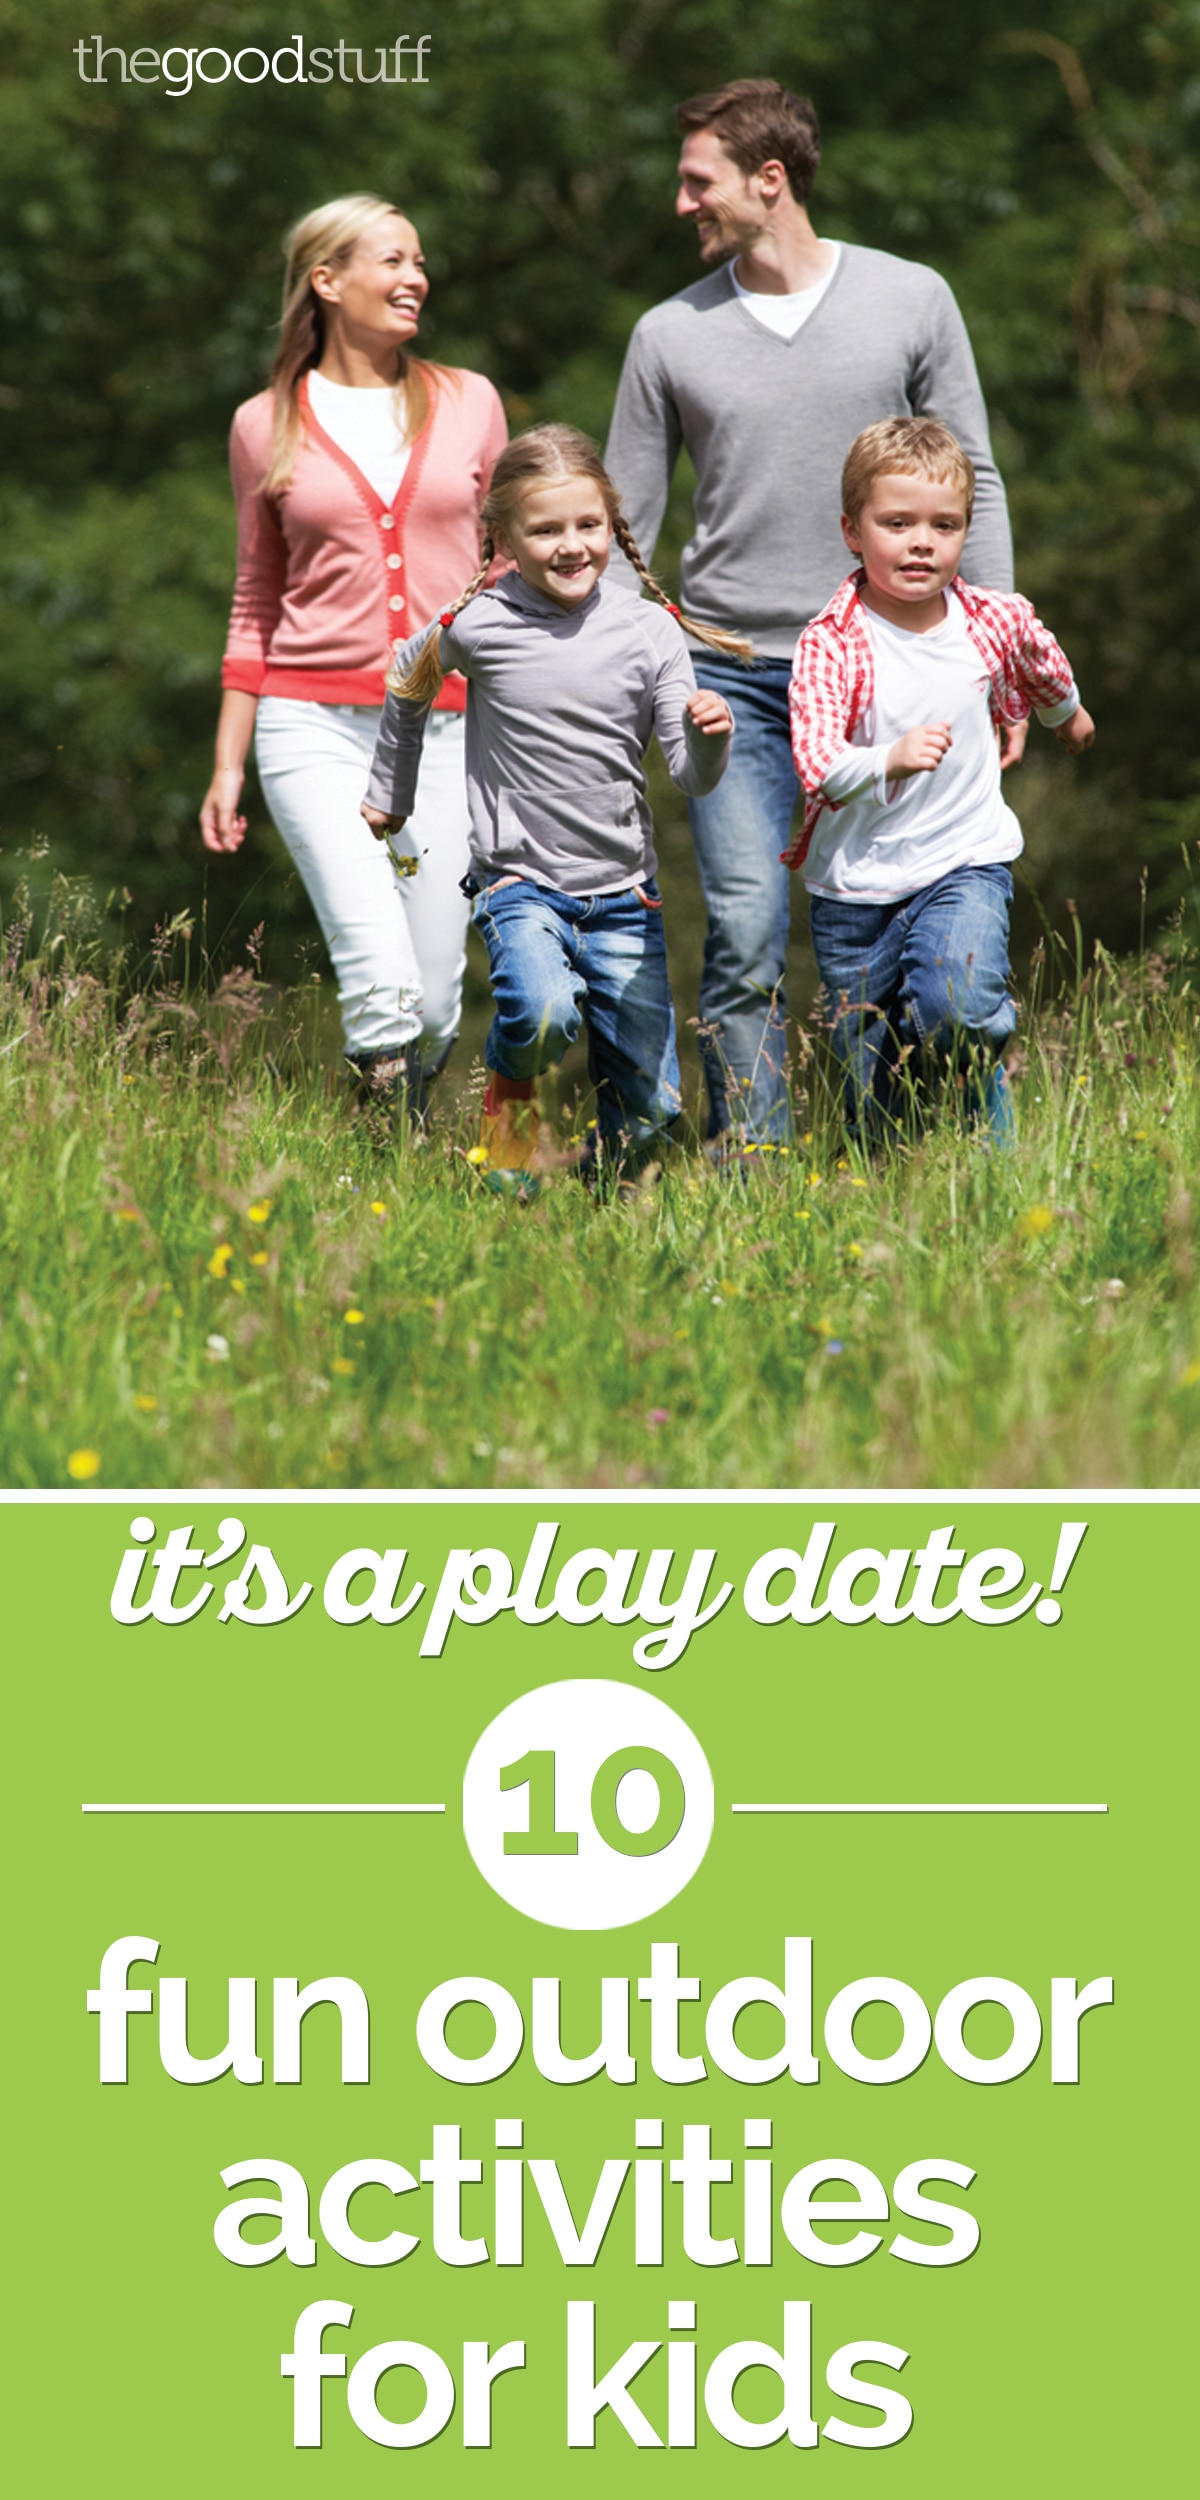 It's a Play Date! 10 Fun Outdoor Activities for Kids | thegoodstuff